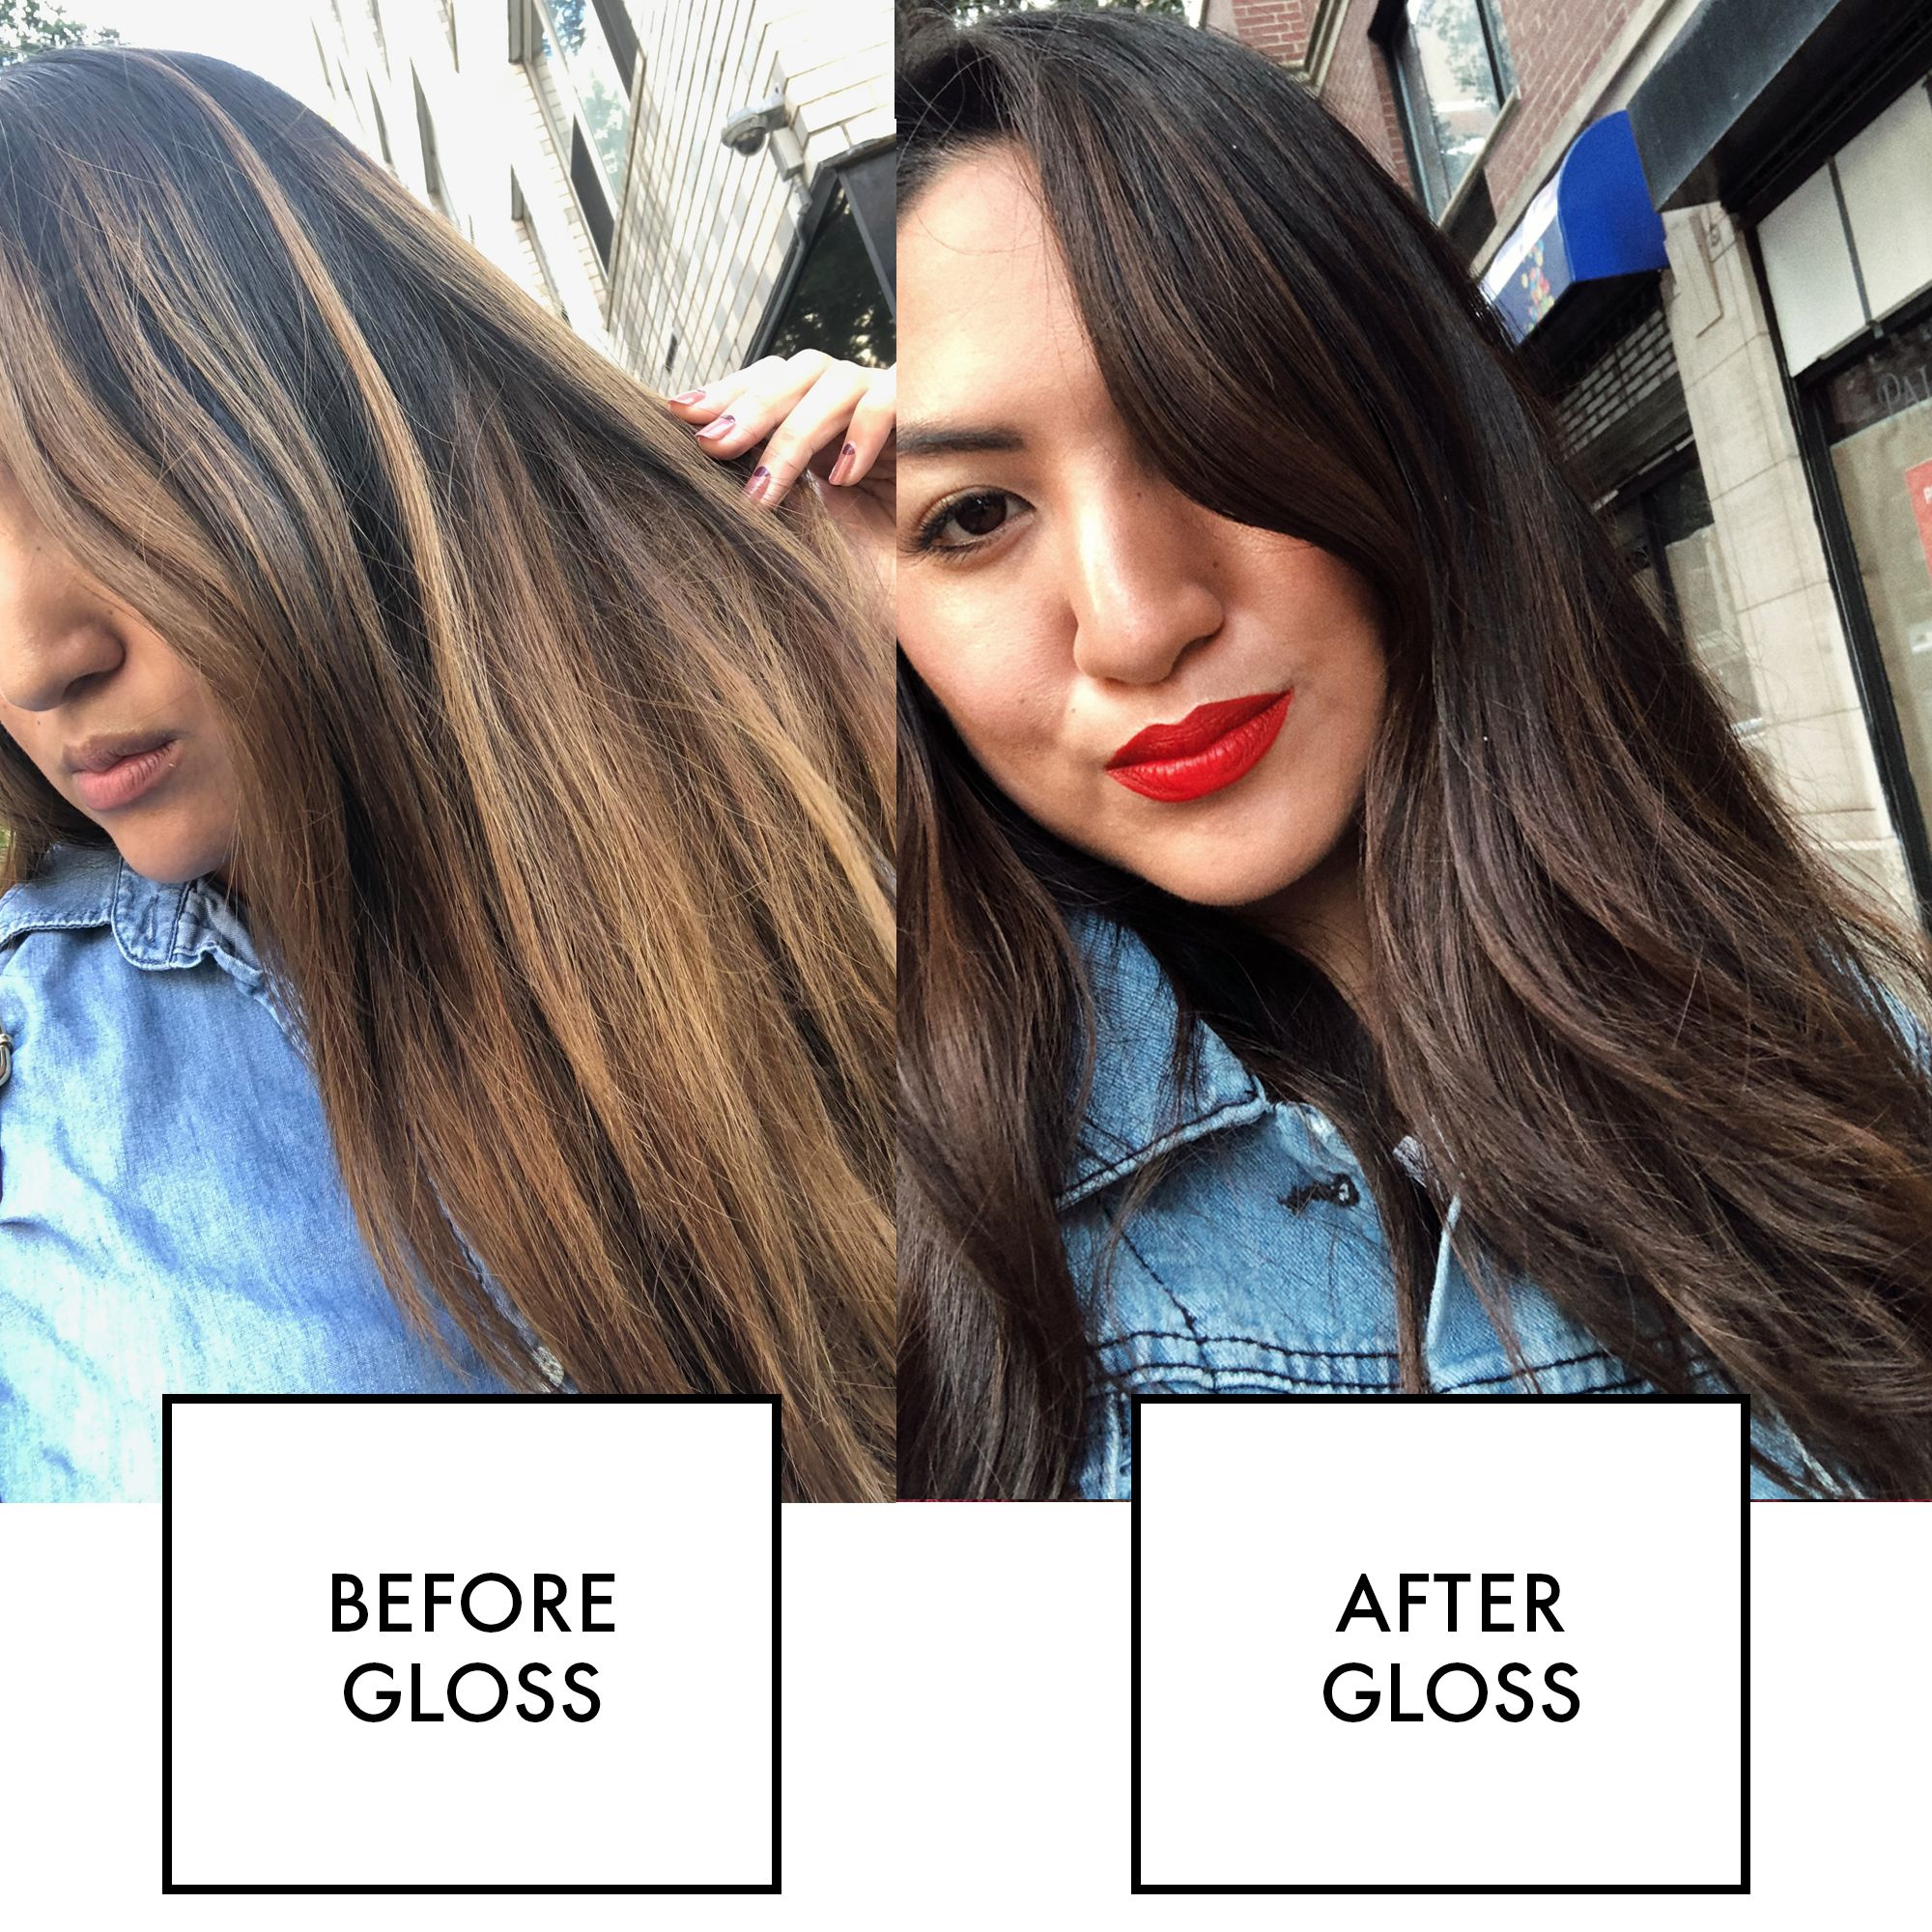 What Is a Hair Gloss, Anyway?